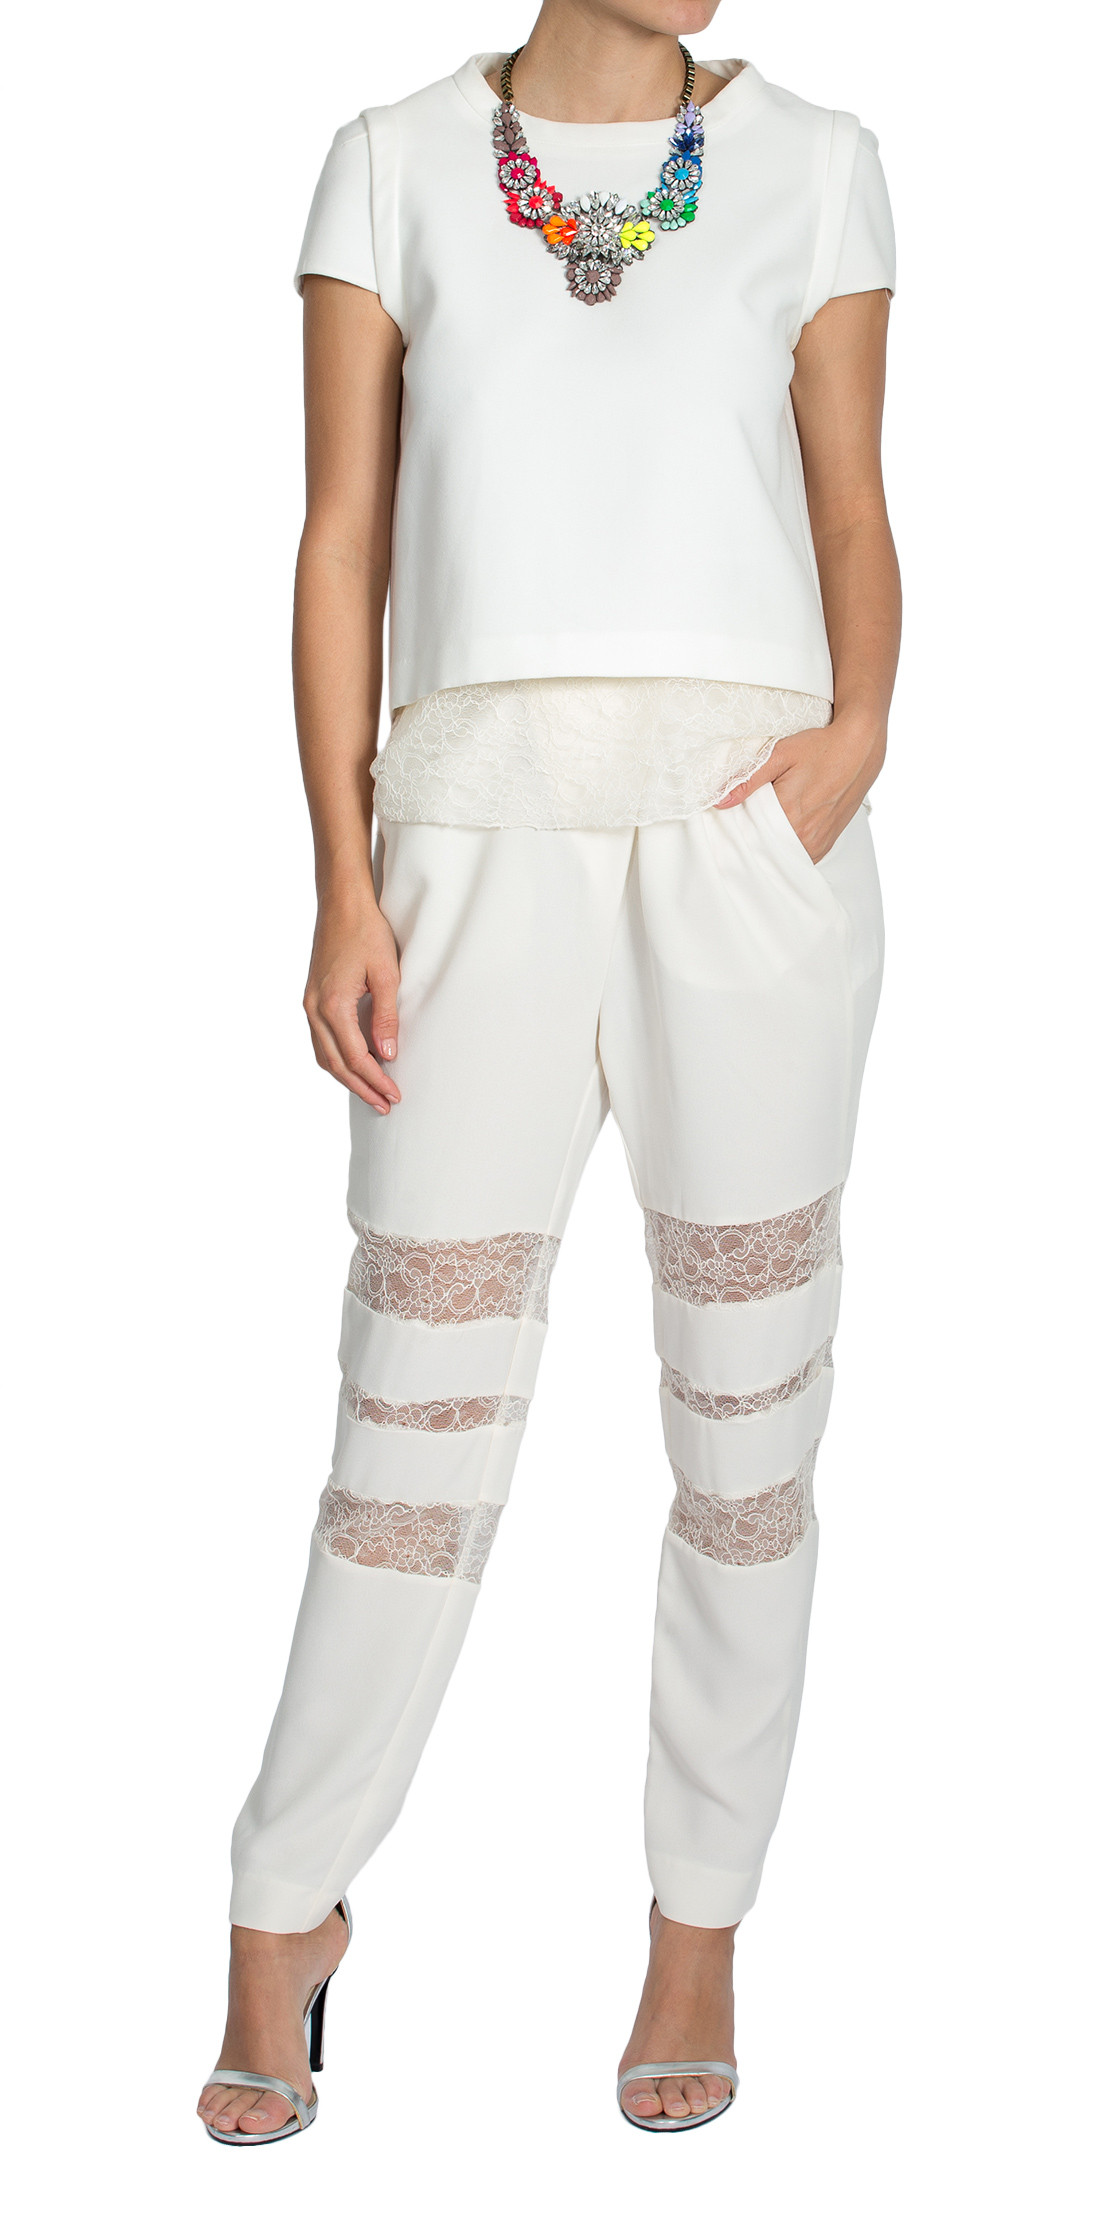 Maje Sheer Lace Tops and Pants